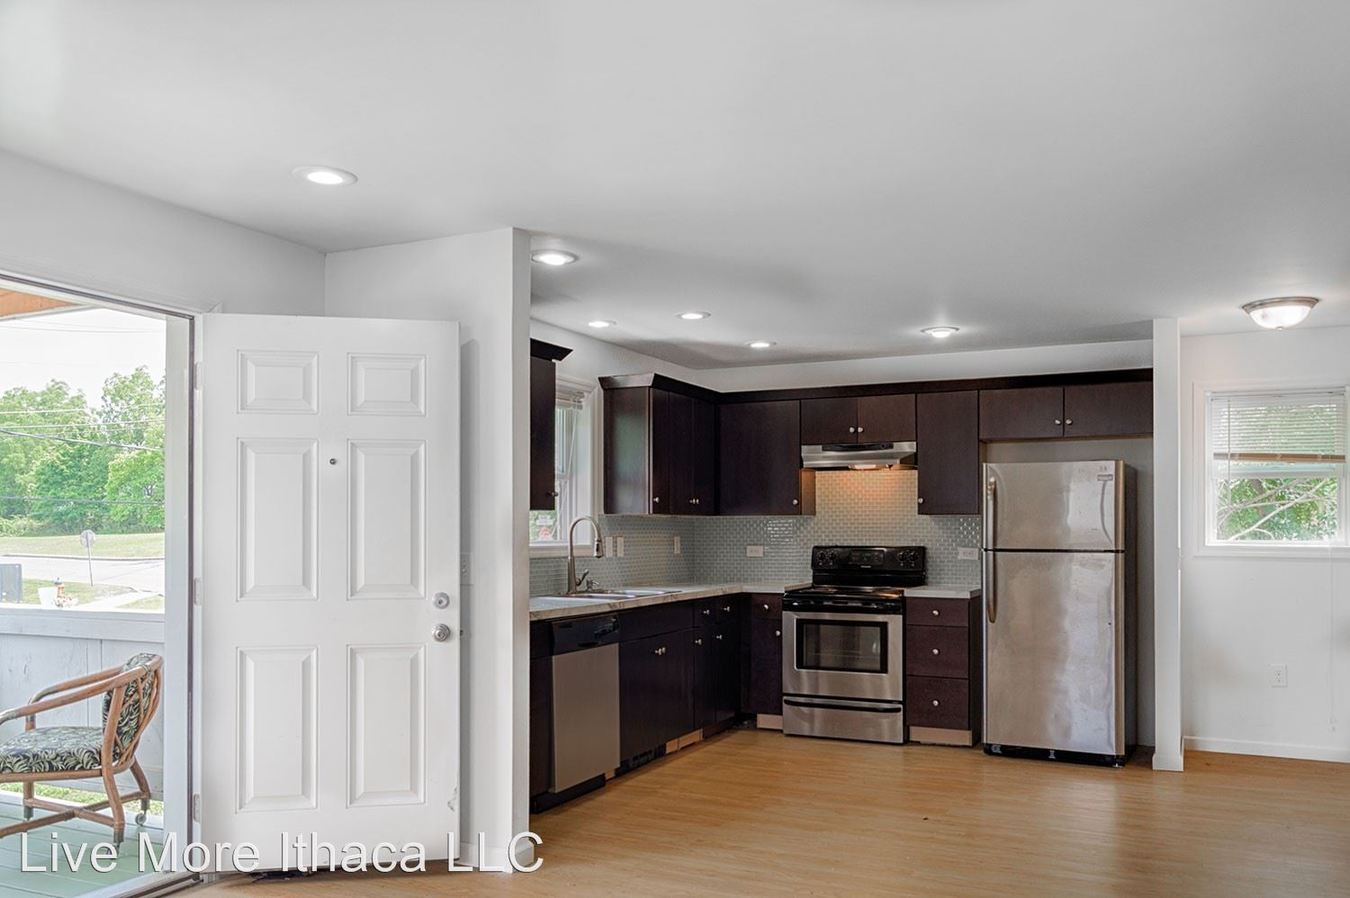 3 Bedrooms 1 Bathroom Apartment for rent at 648 Hudson St in Ithaca, NY